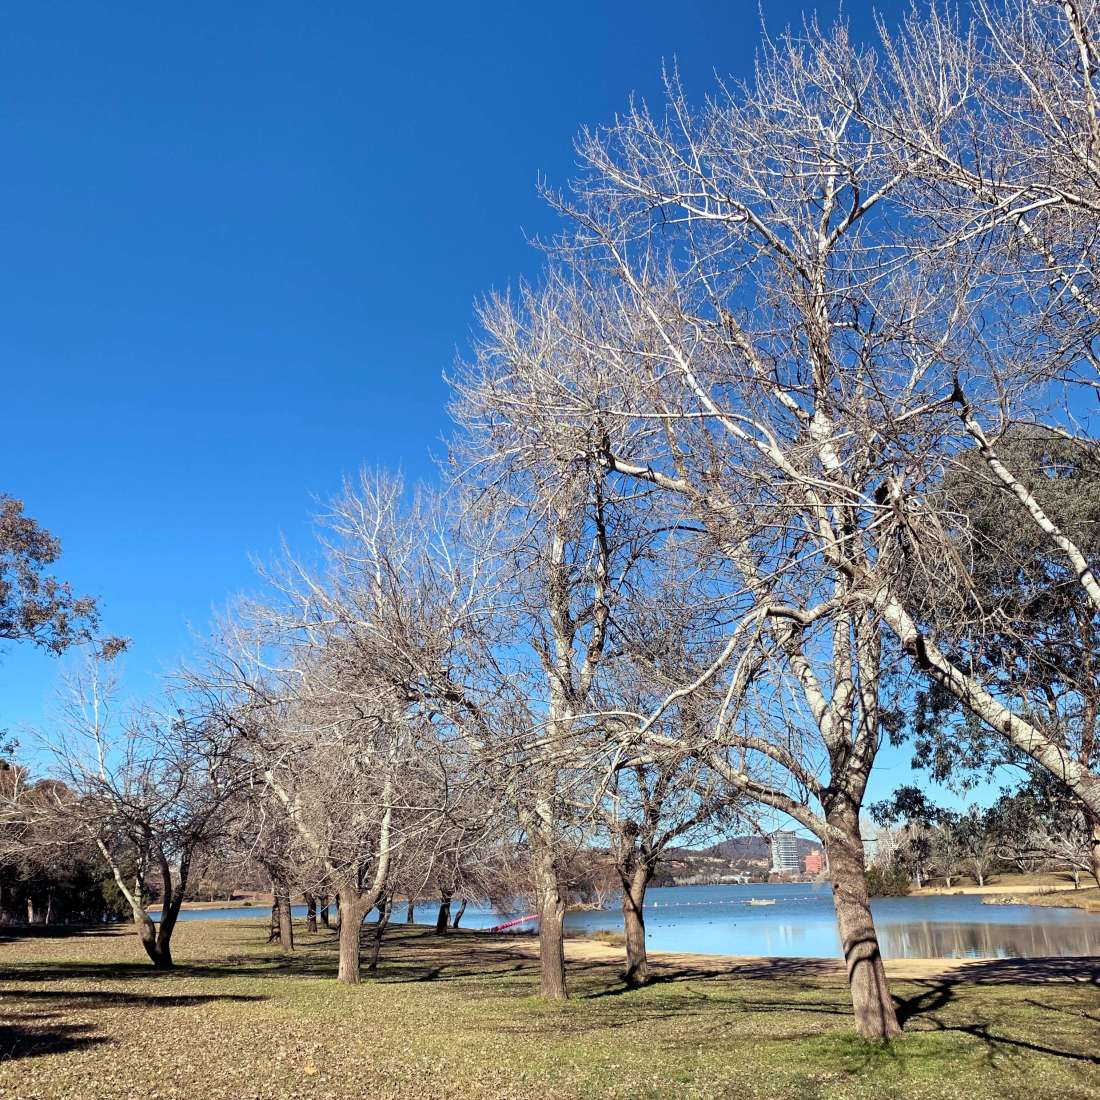 Winter trees by the Lake Ginninderra